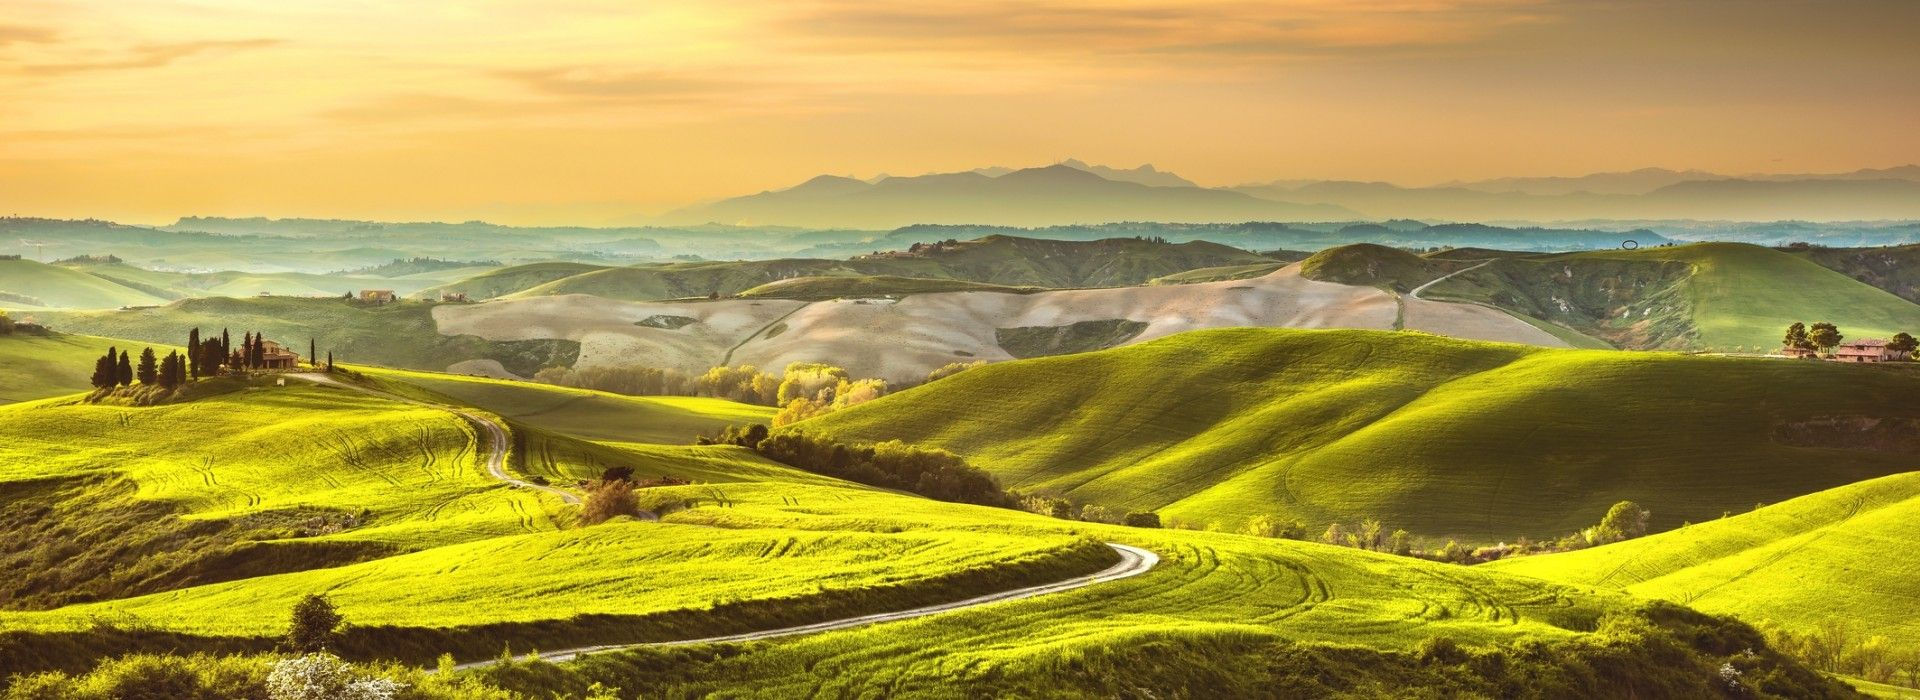 Travelling Tuscany - Tours and Holiday Packages in Tuscany